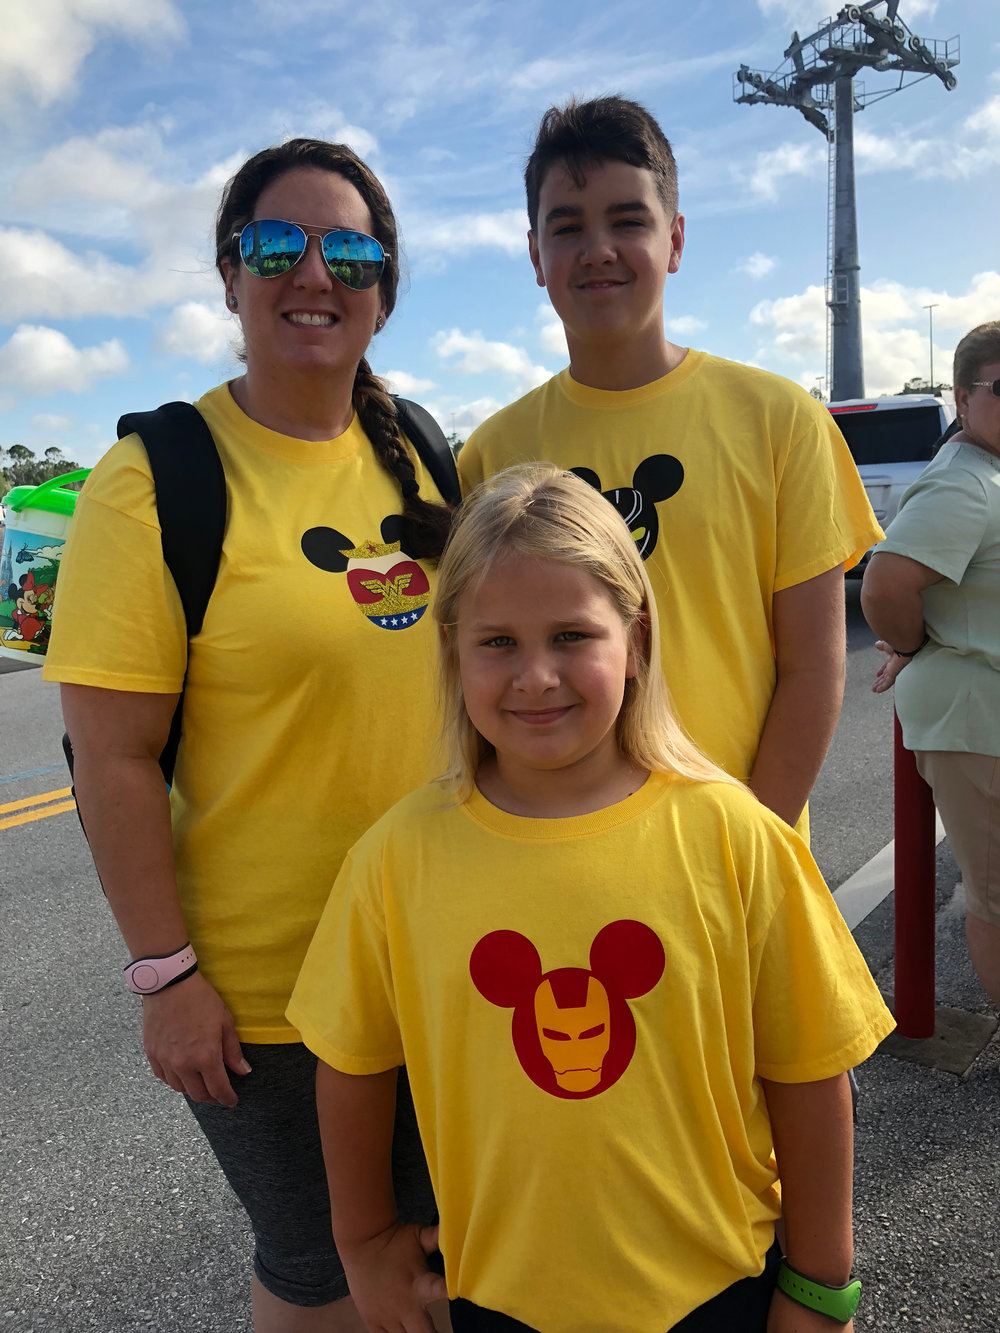 Candice and her two sons at Disney.